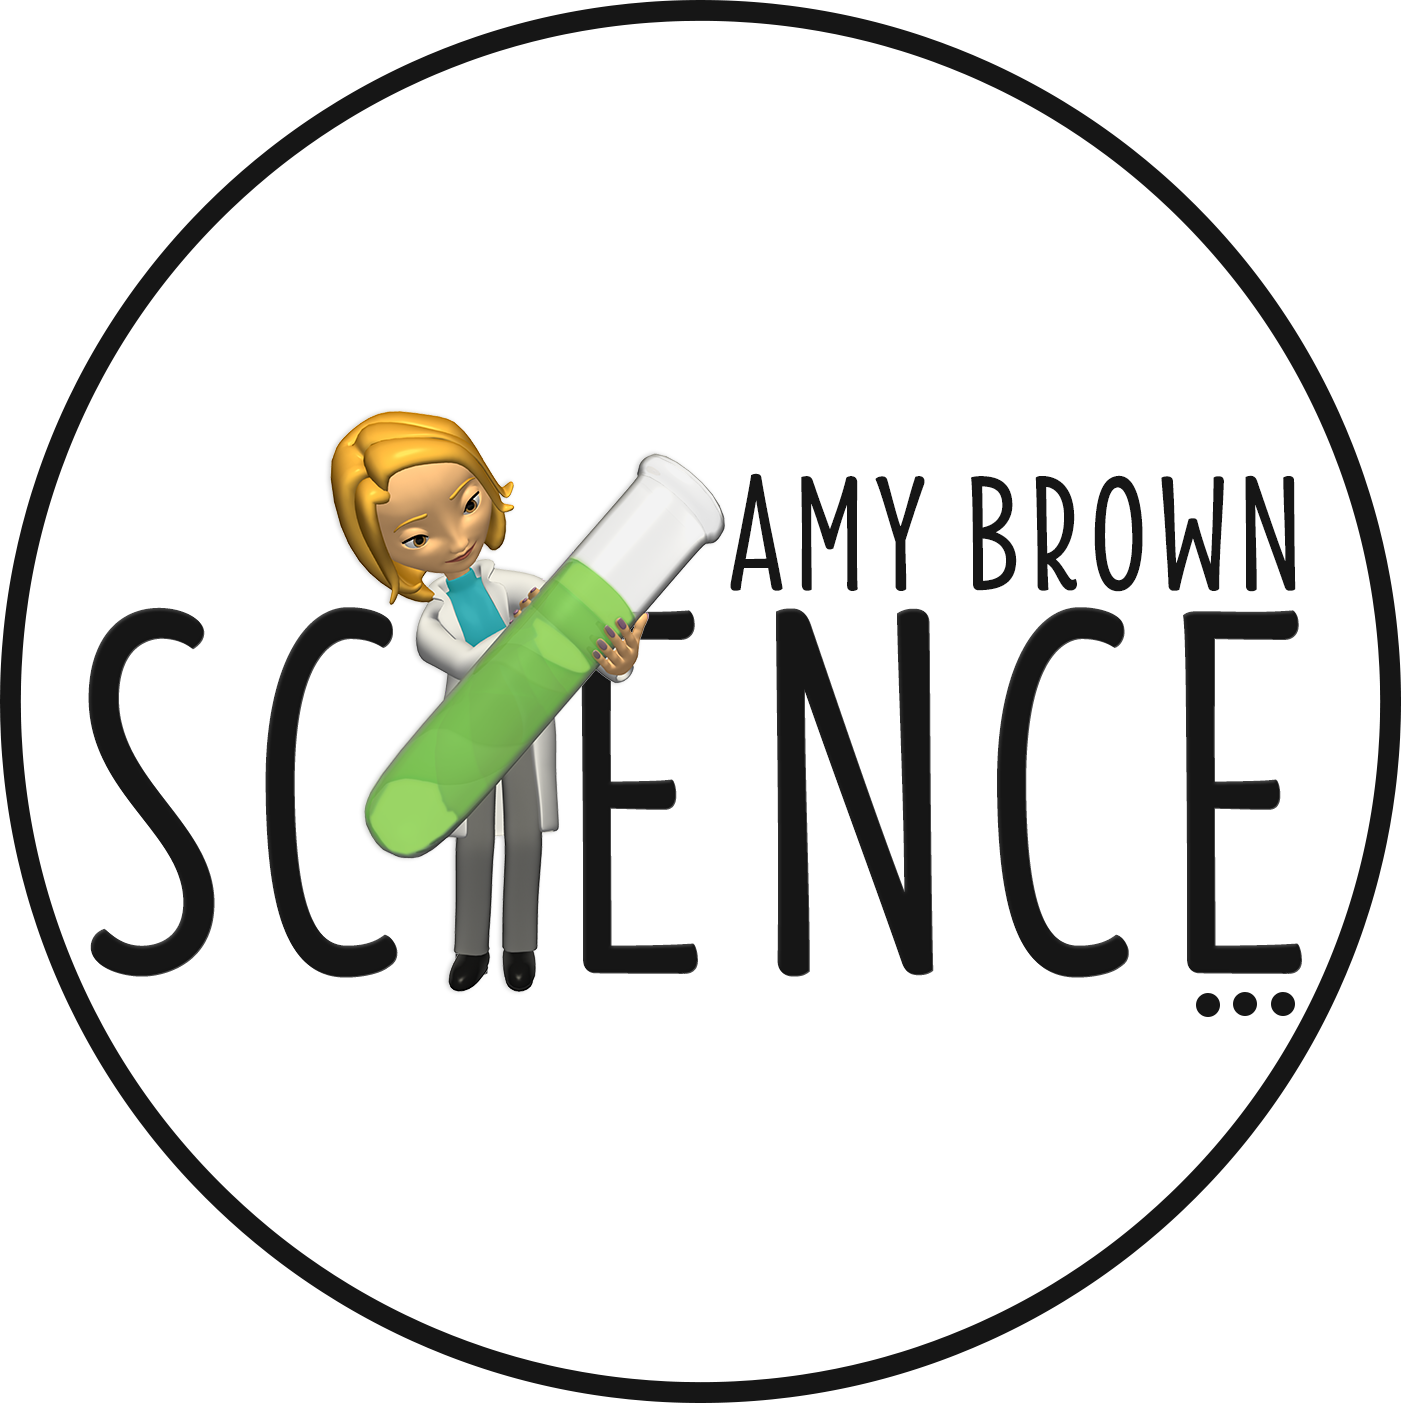 Amy brown contact me. Notebook clipart science textbook